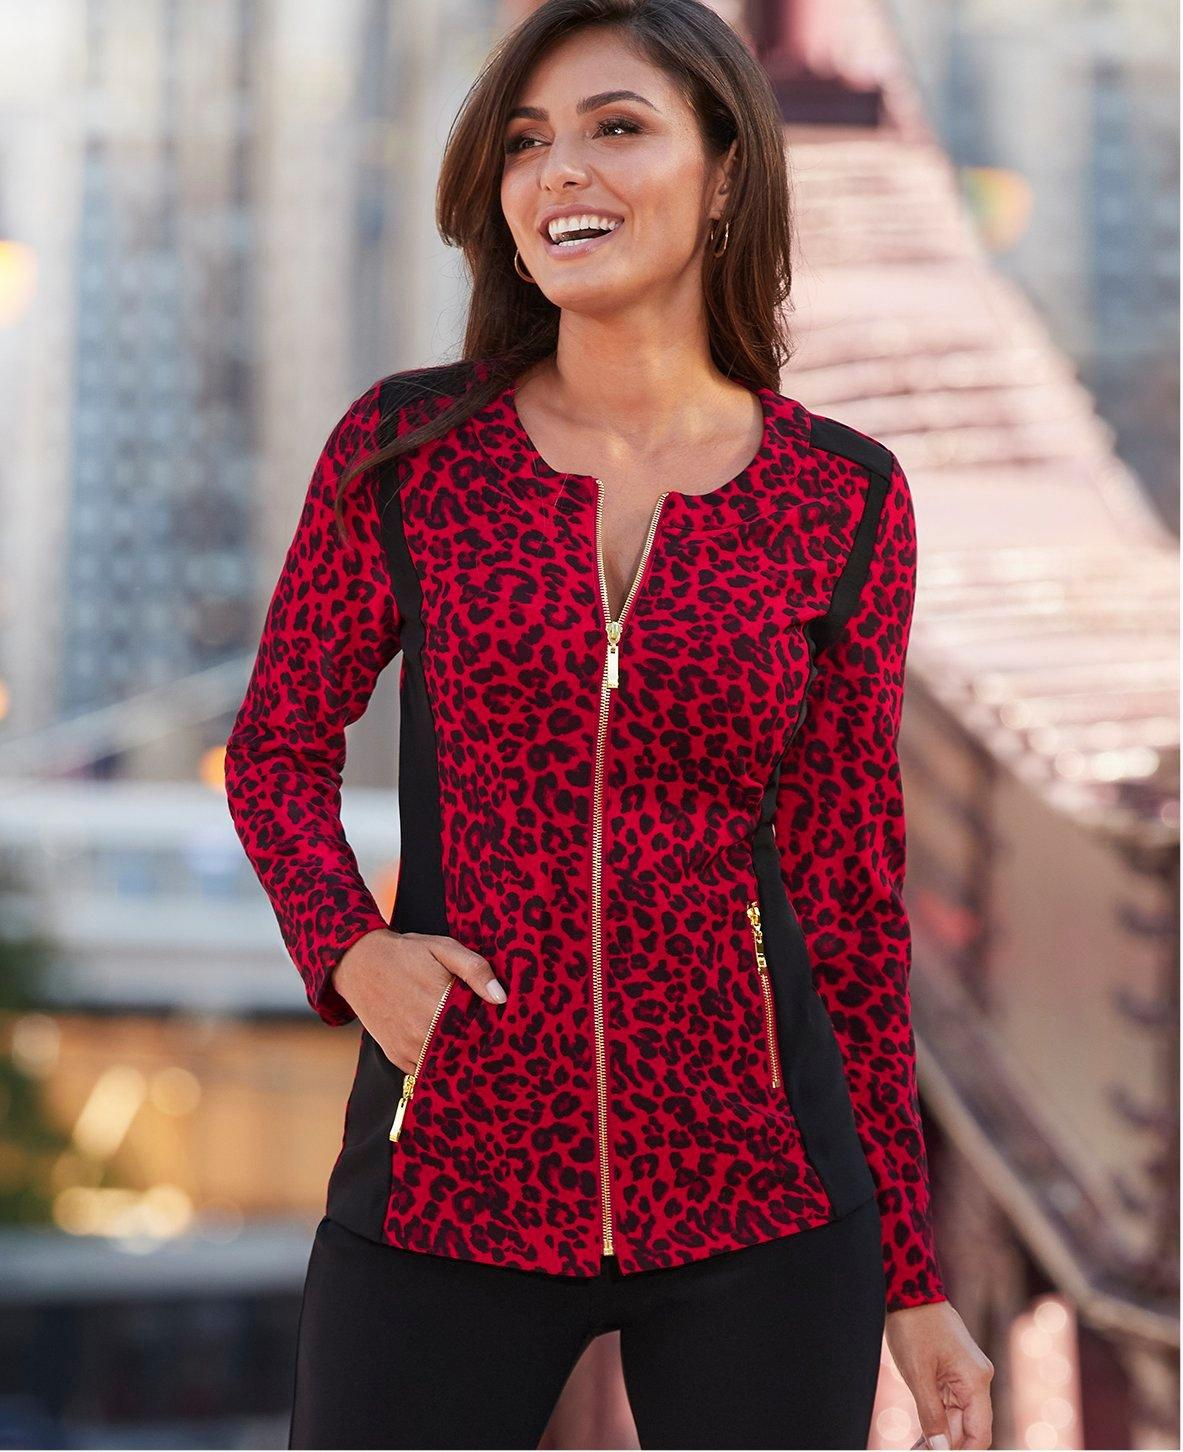 model wearing a red leopard print two-piece chic zip set.